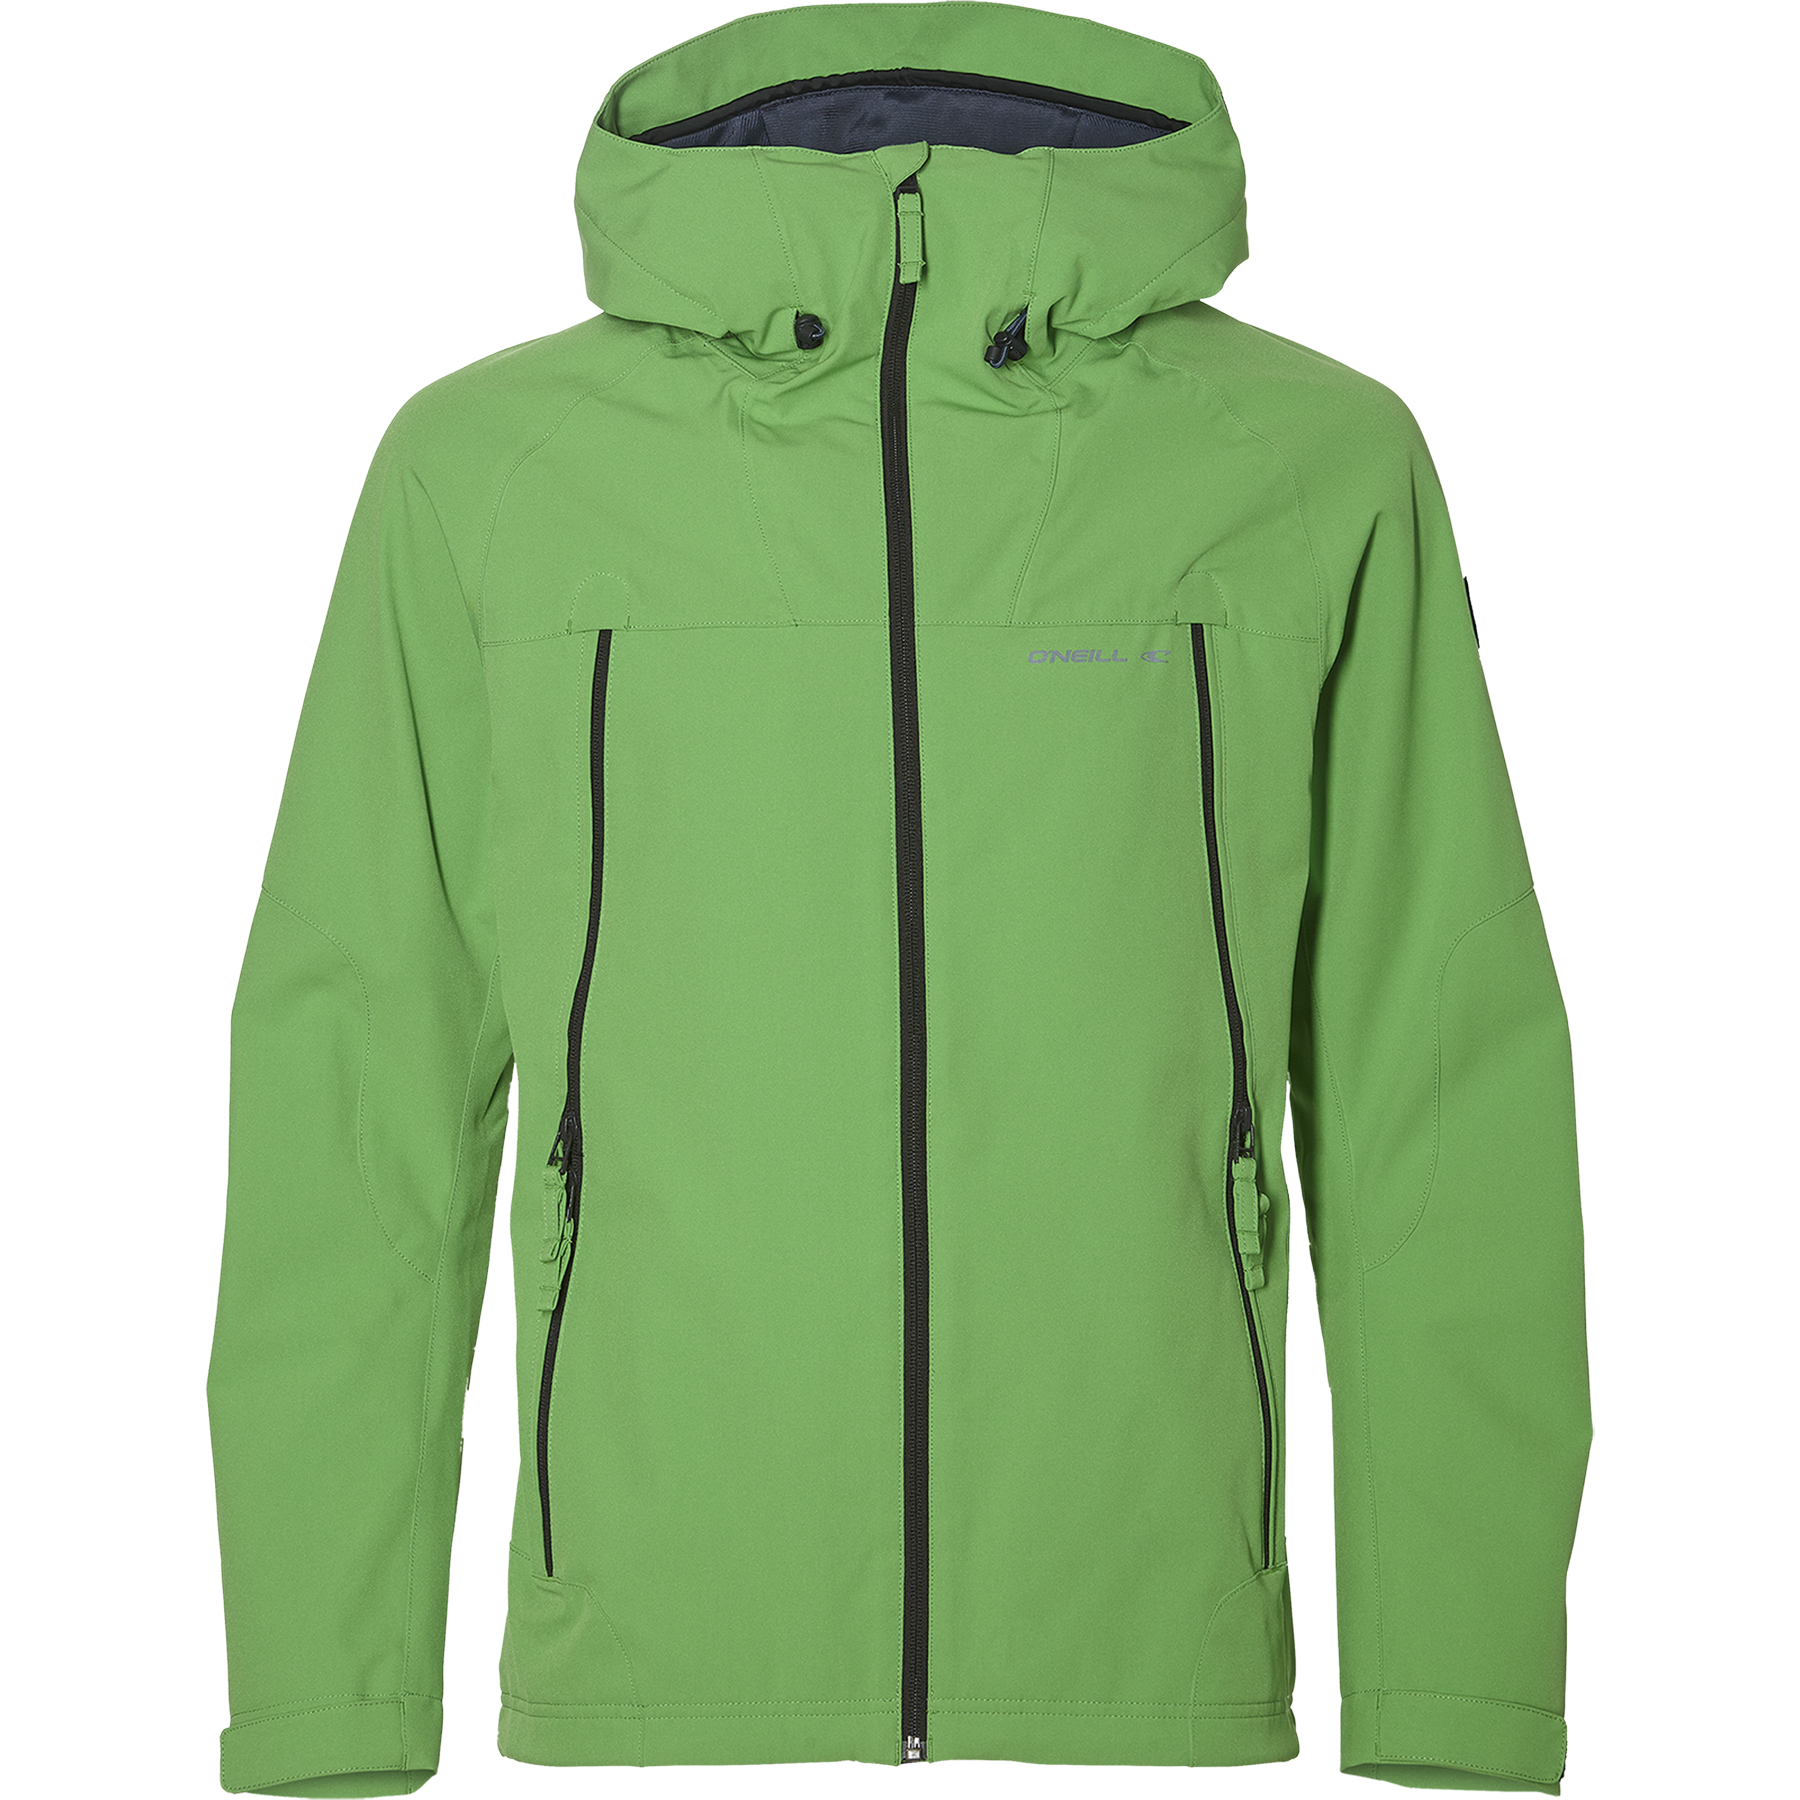 Details about O'Neill Functional Jacket LM Hail Shell Jacket Green Waterproof show original title